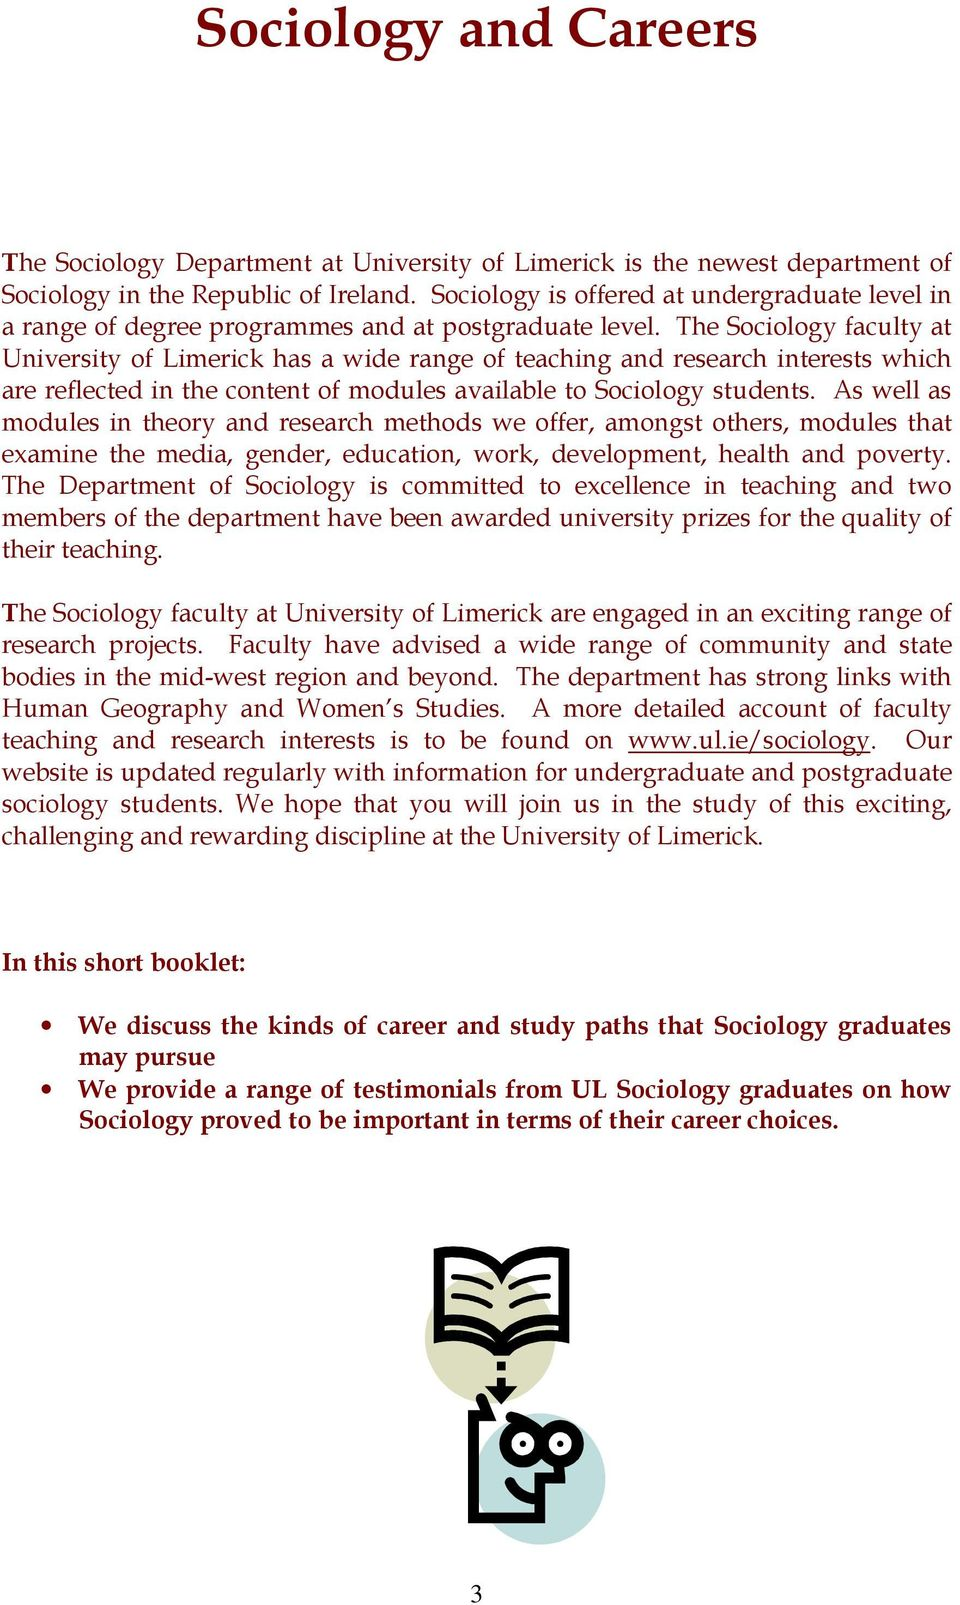 The Sociology faculty at University of Limerick has a wide range of teaching and research interests which are reflected in the content of modules available to Sociology students.